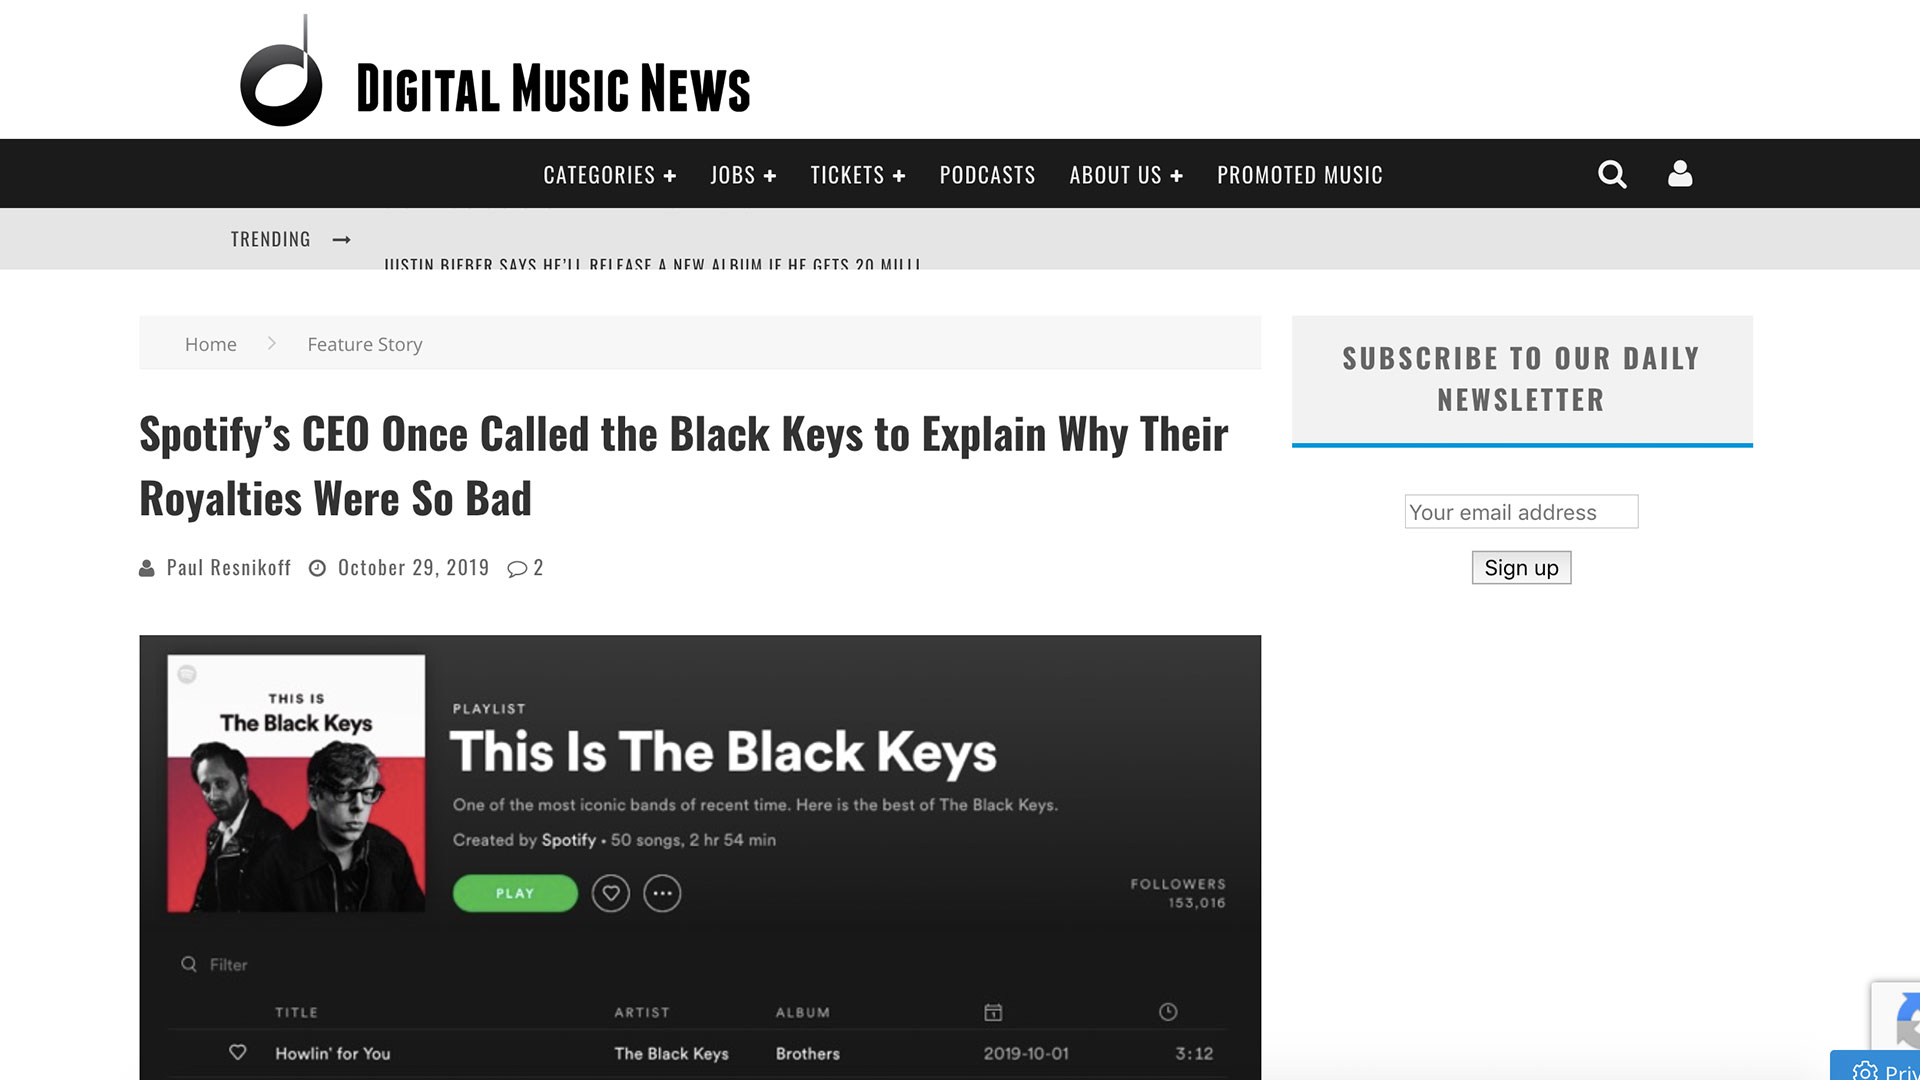 Fairness Rocks News Spotify's CEO Once Called the Black Keys to Explain Why Their Royalties Were So Bad